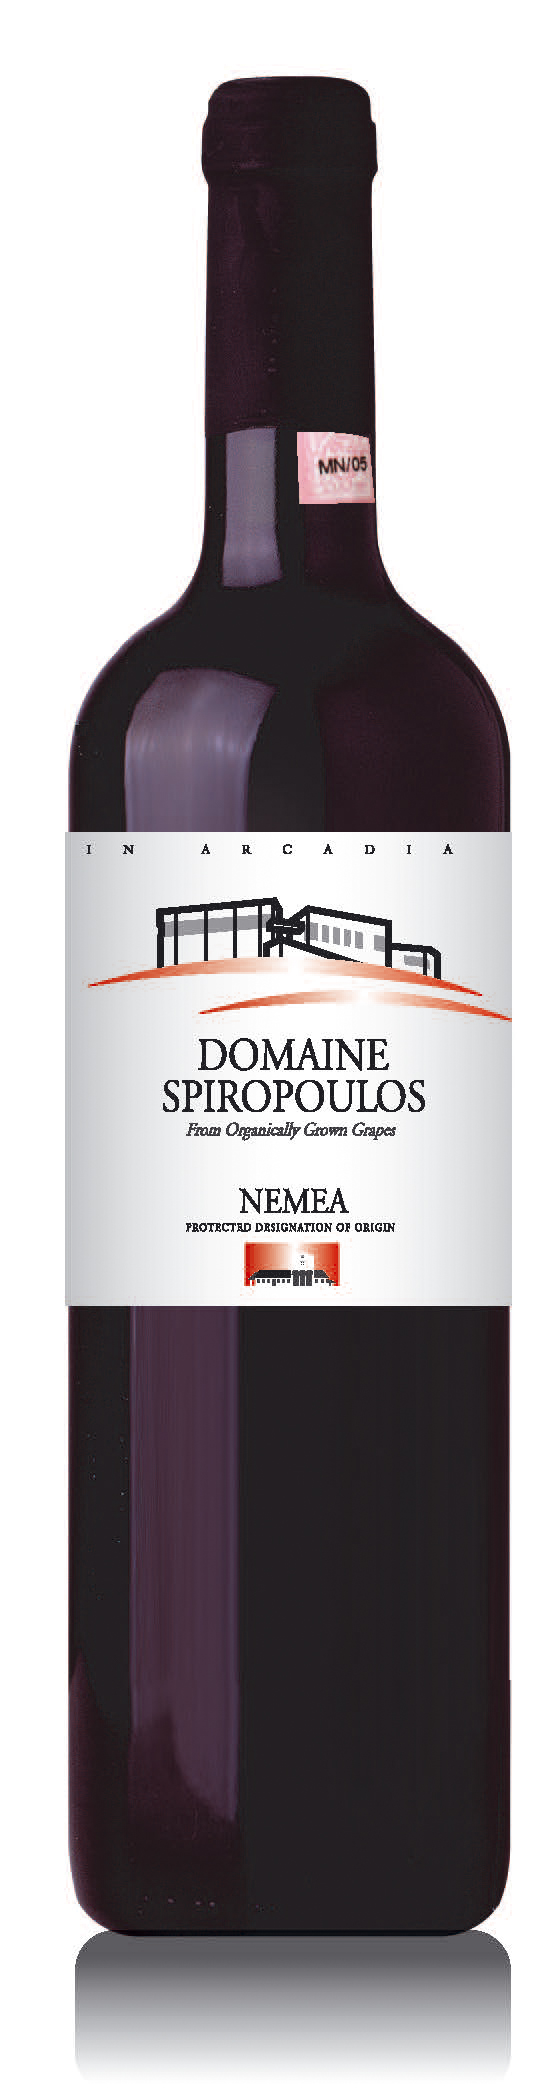 NEMEA_BOTTLE_2012